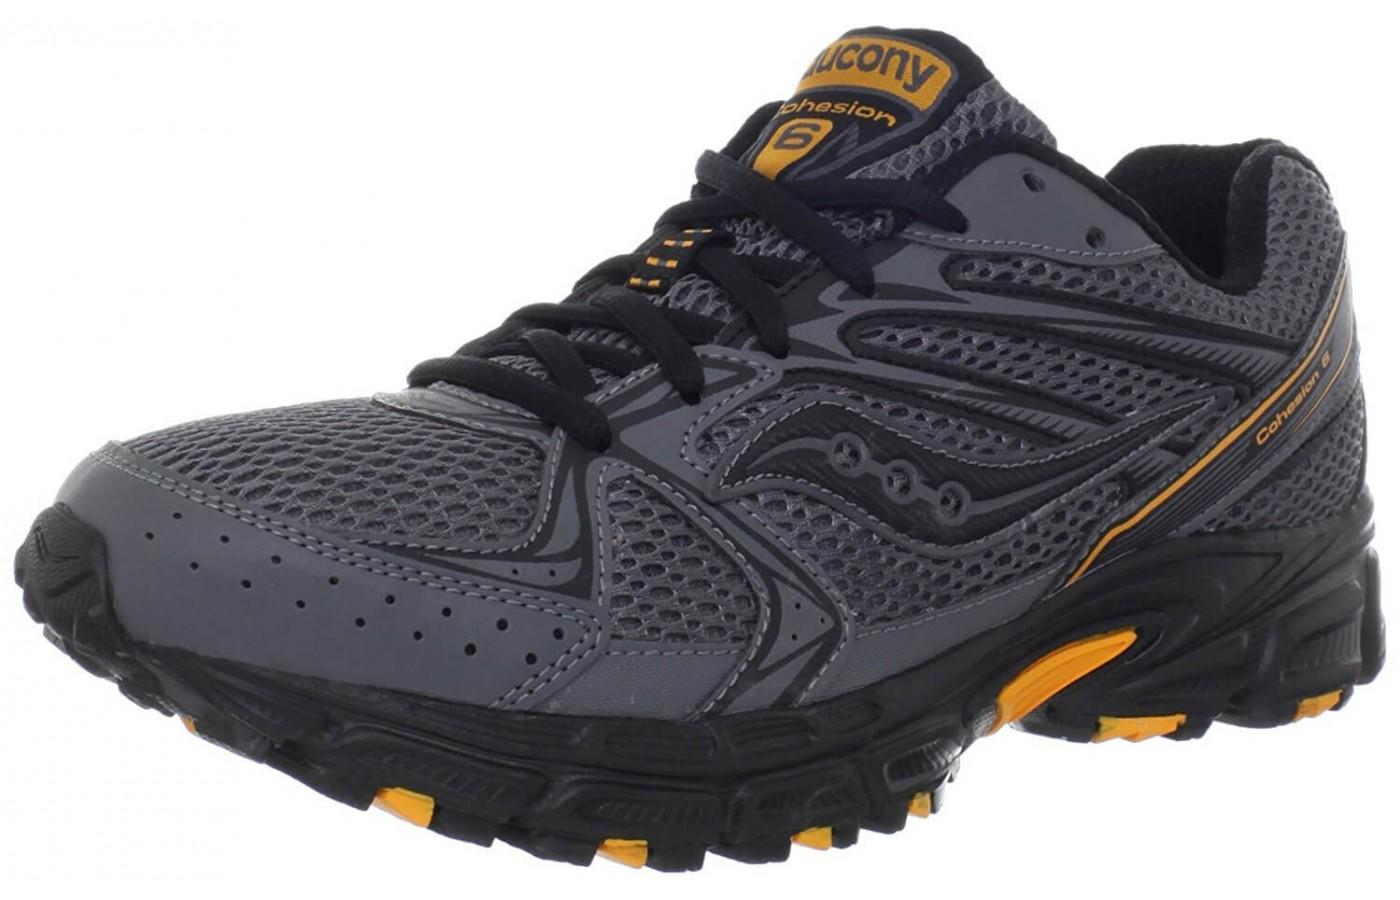 The Saucony Cohesion TR6 showing off it's rugged good looks